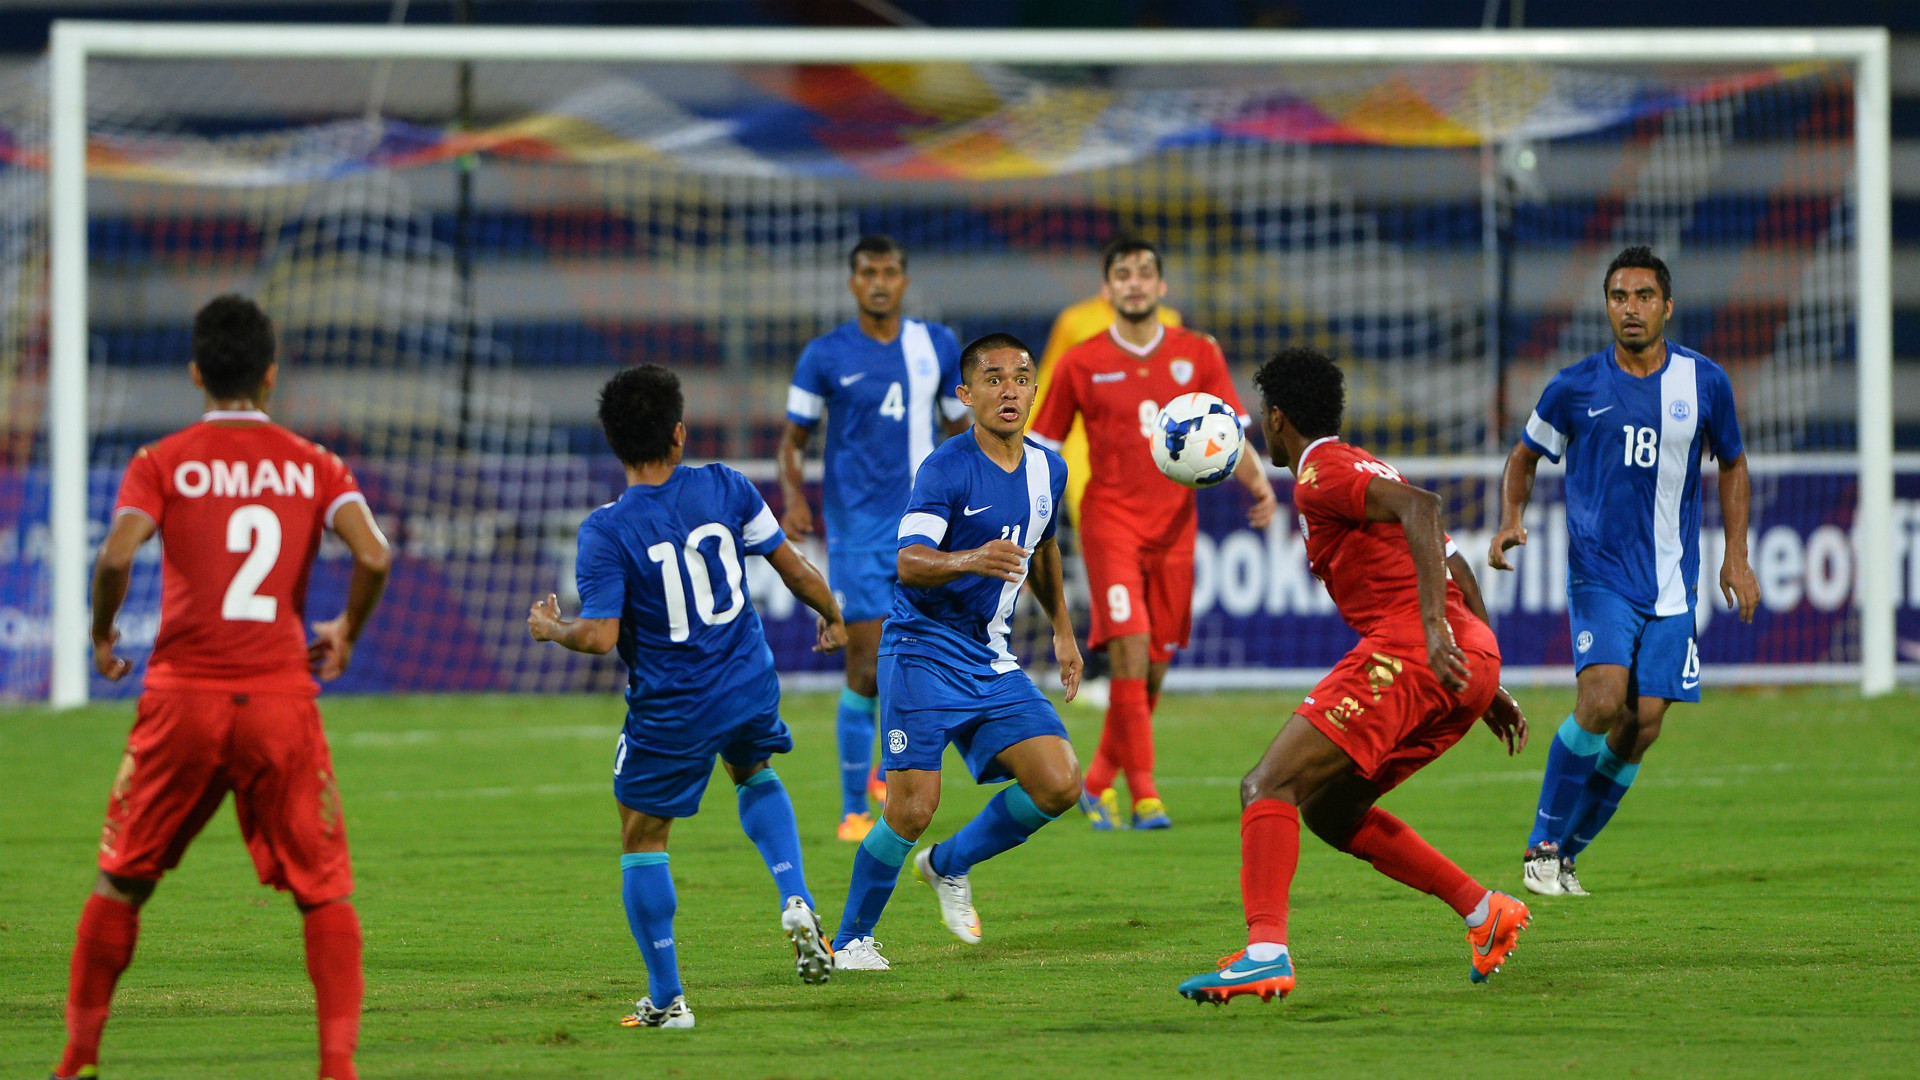 Sunil Chhetri India Oman WC Qualification Asia 06112015